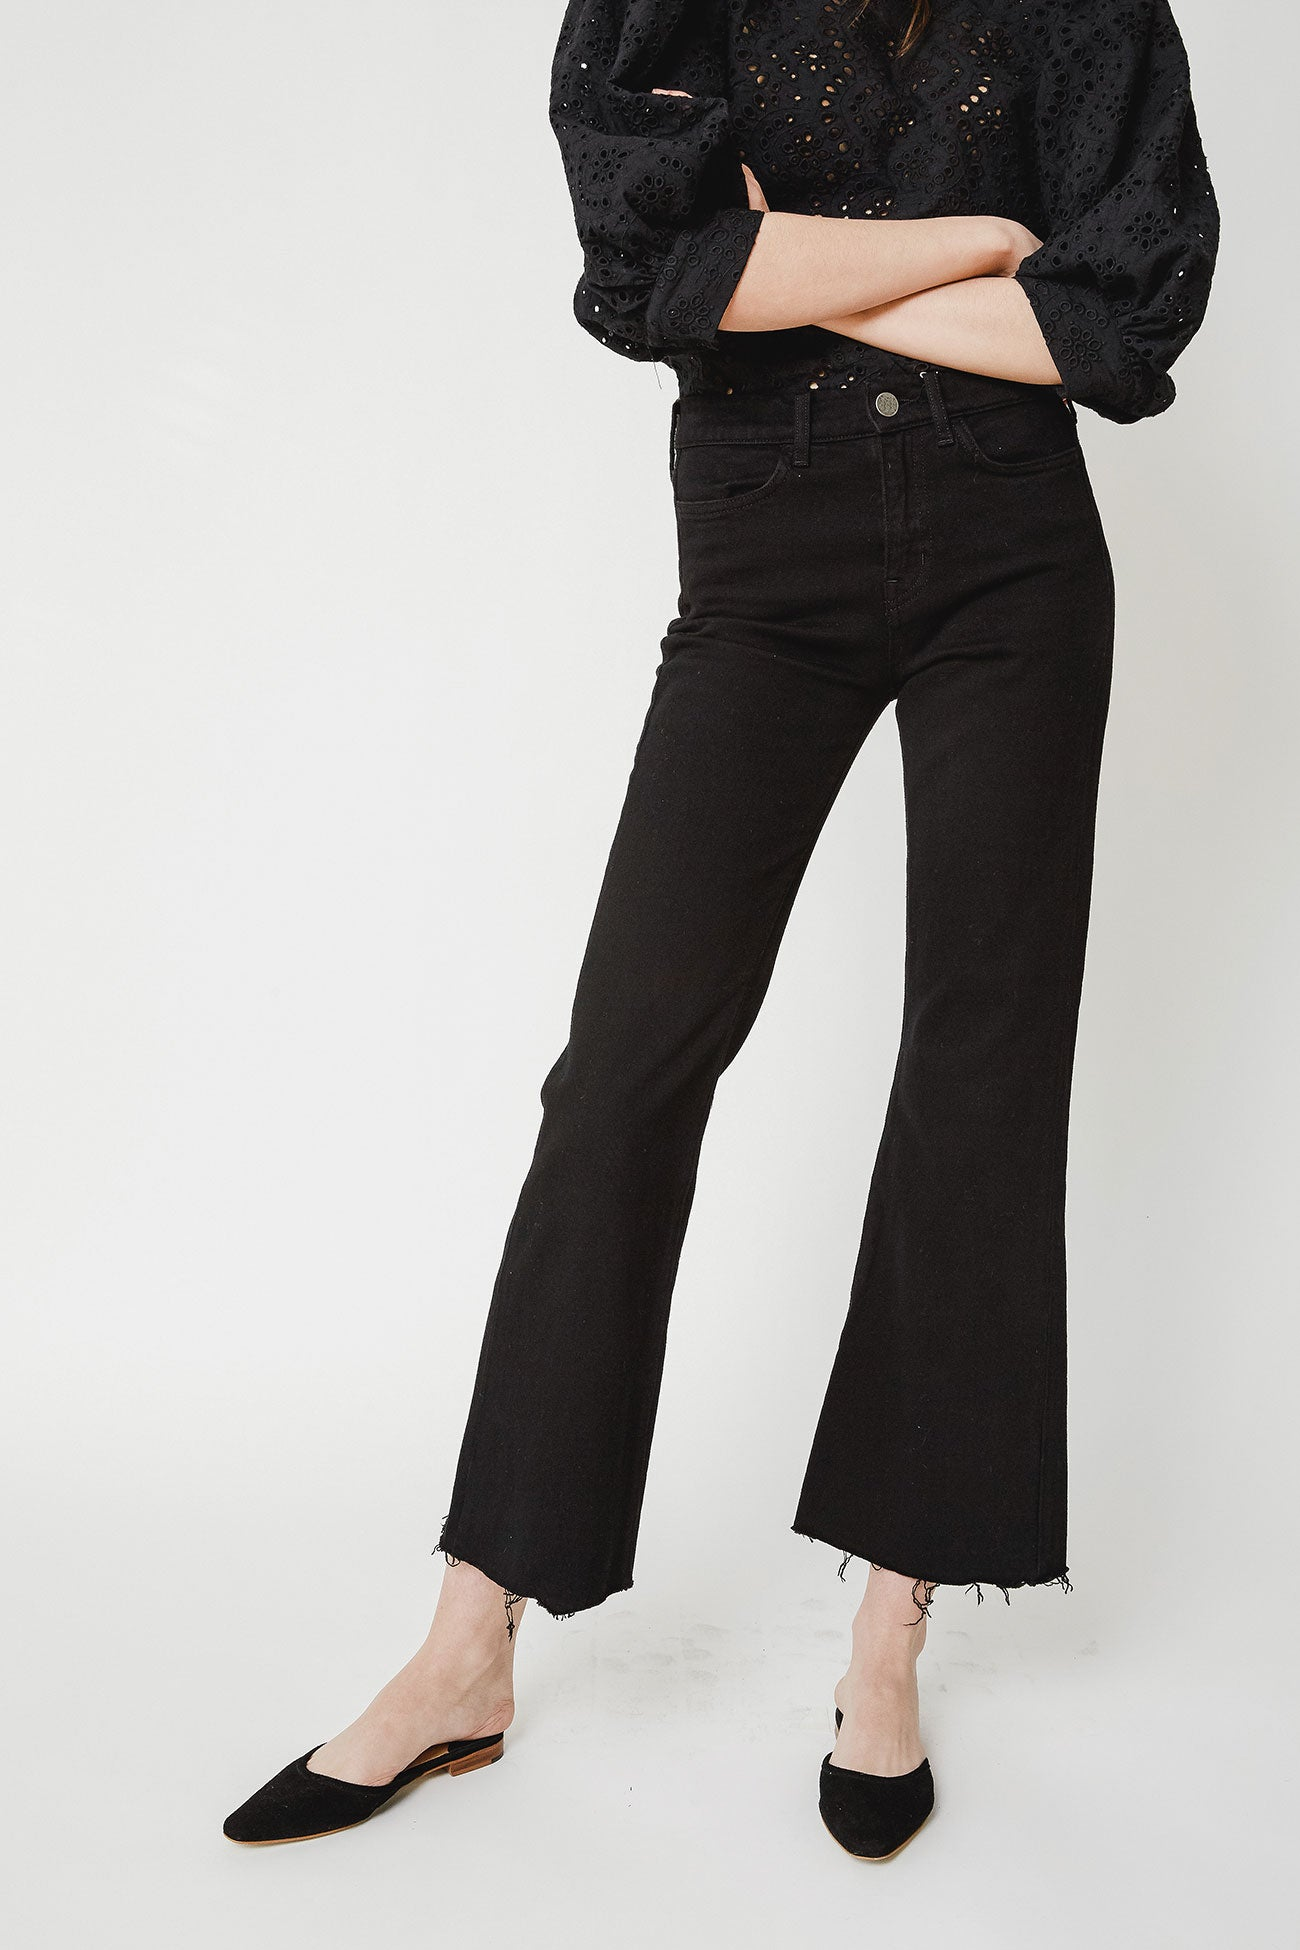 BLACK VICKY LONG FLARE DENIM